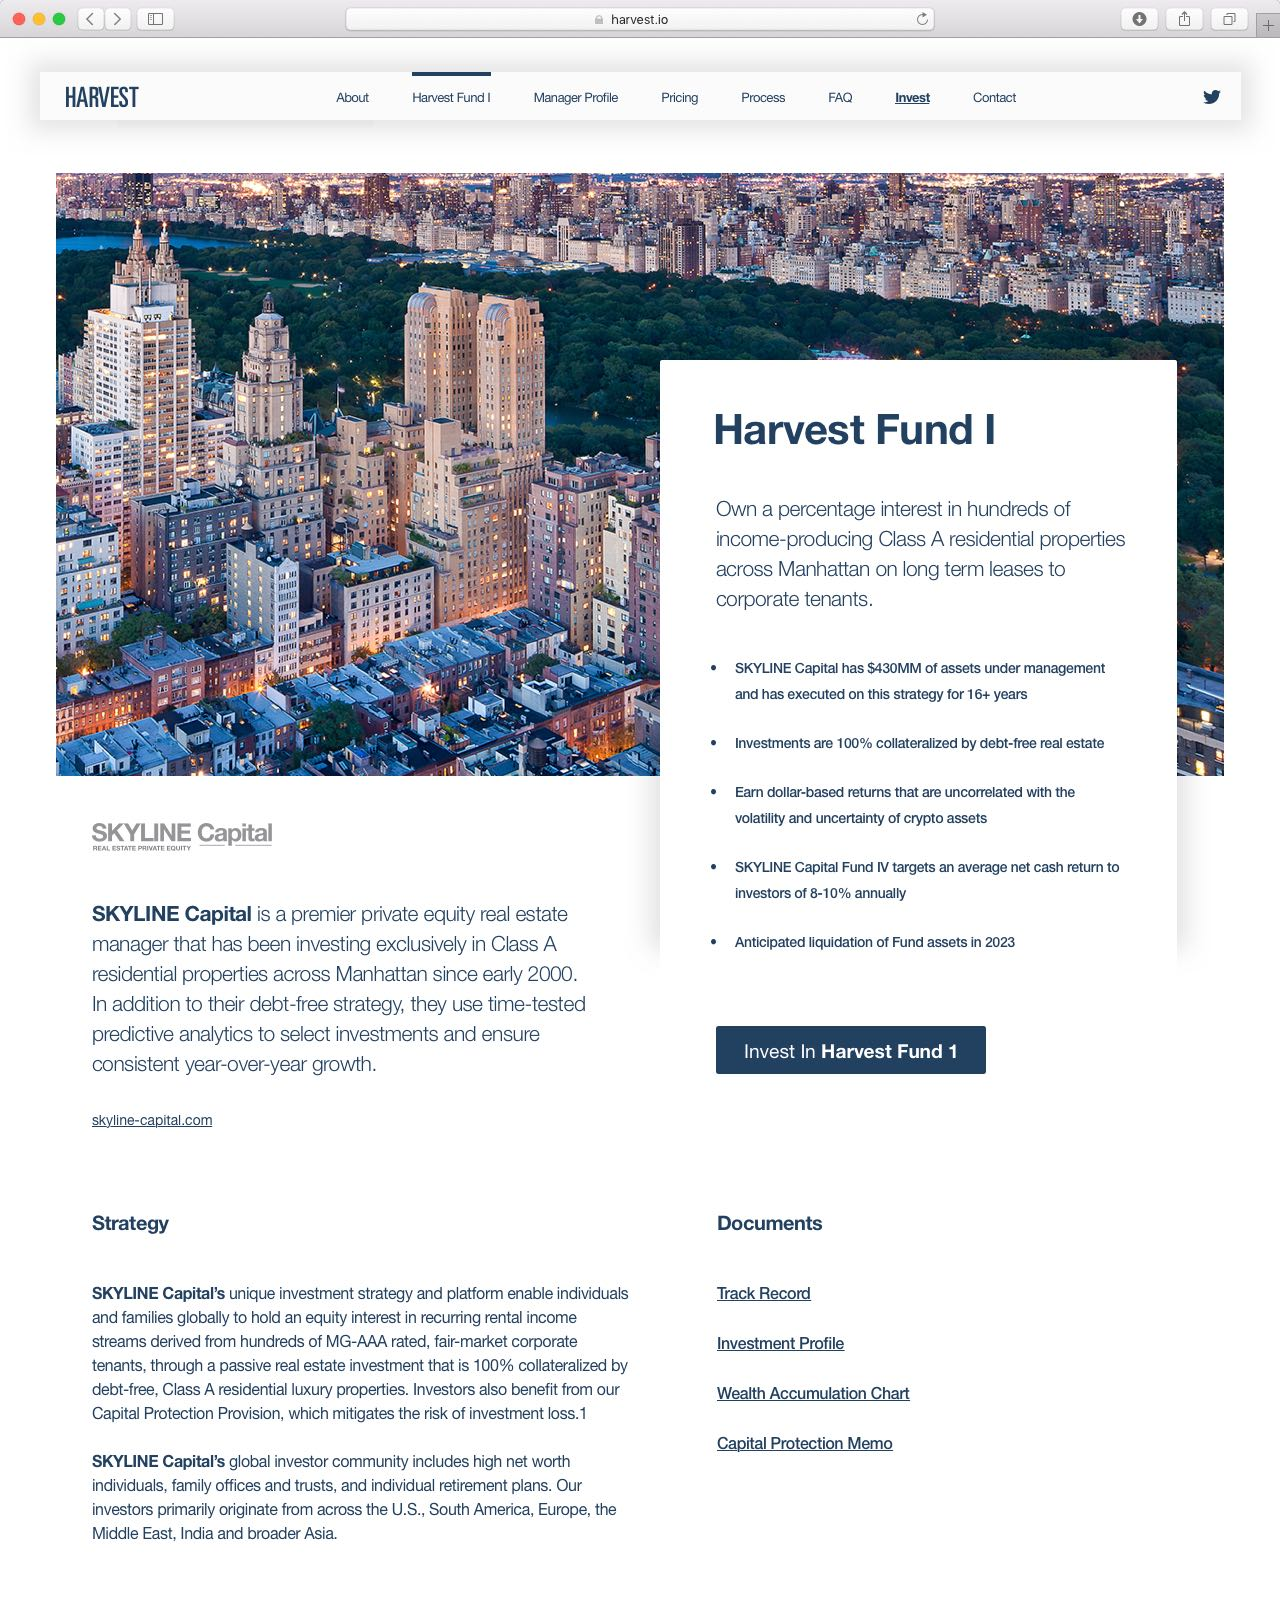 Harvest Fund offering description on a 2 column grid with embedded image in layout — by Dima Yagnyuk.